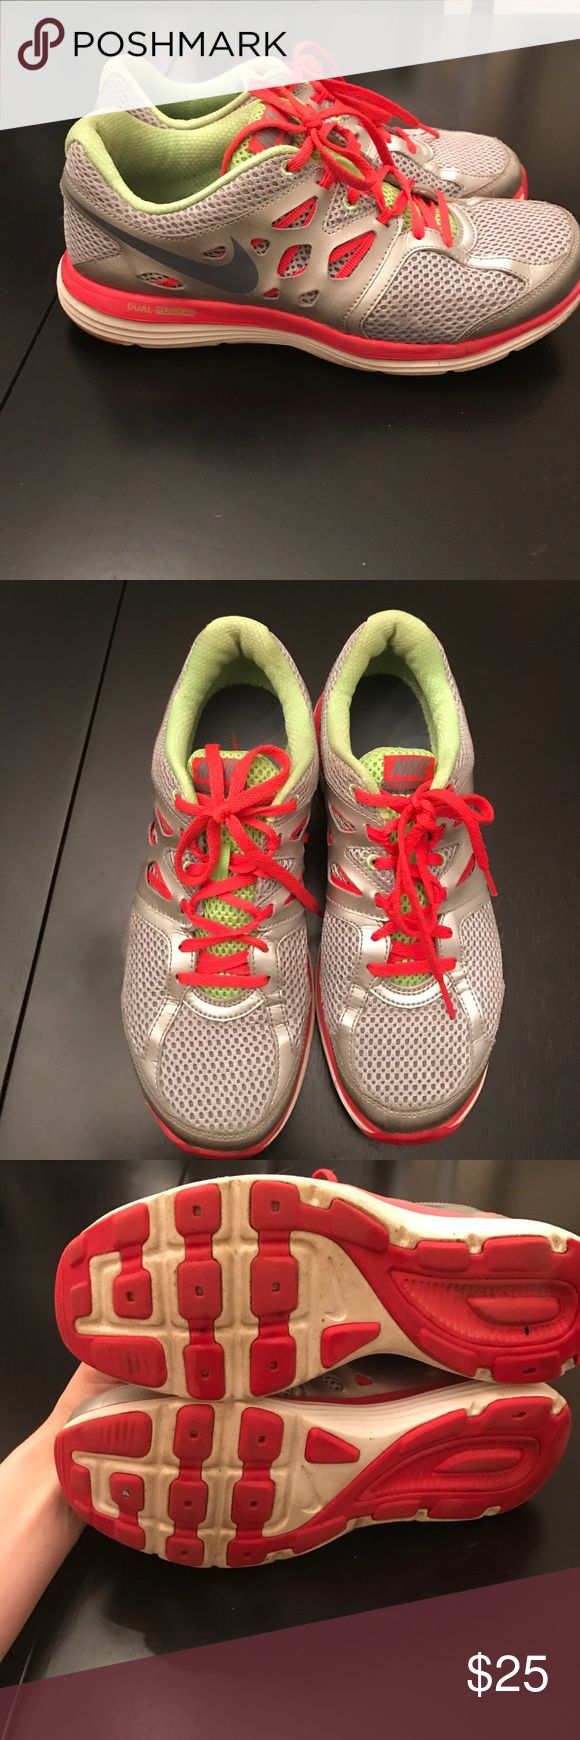 Nike Dual Fusion women's sneakers Gently used Nike Shoes Athletic Shoes